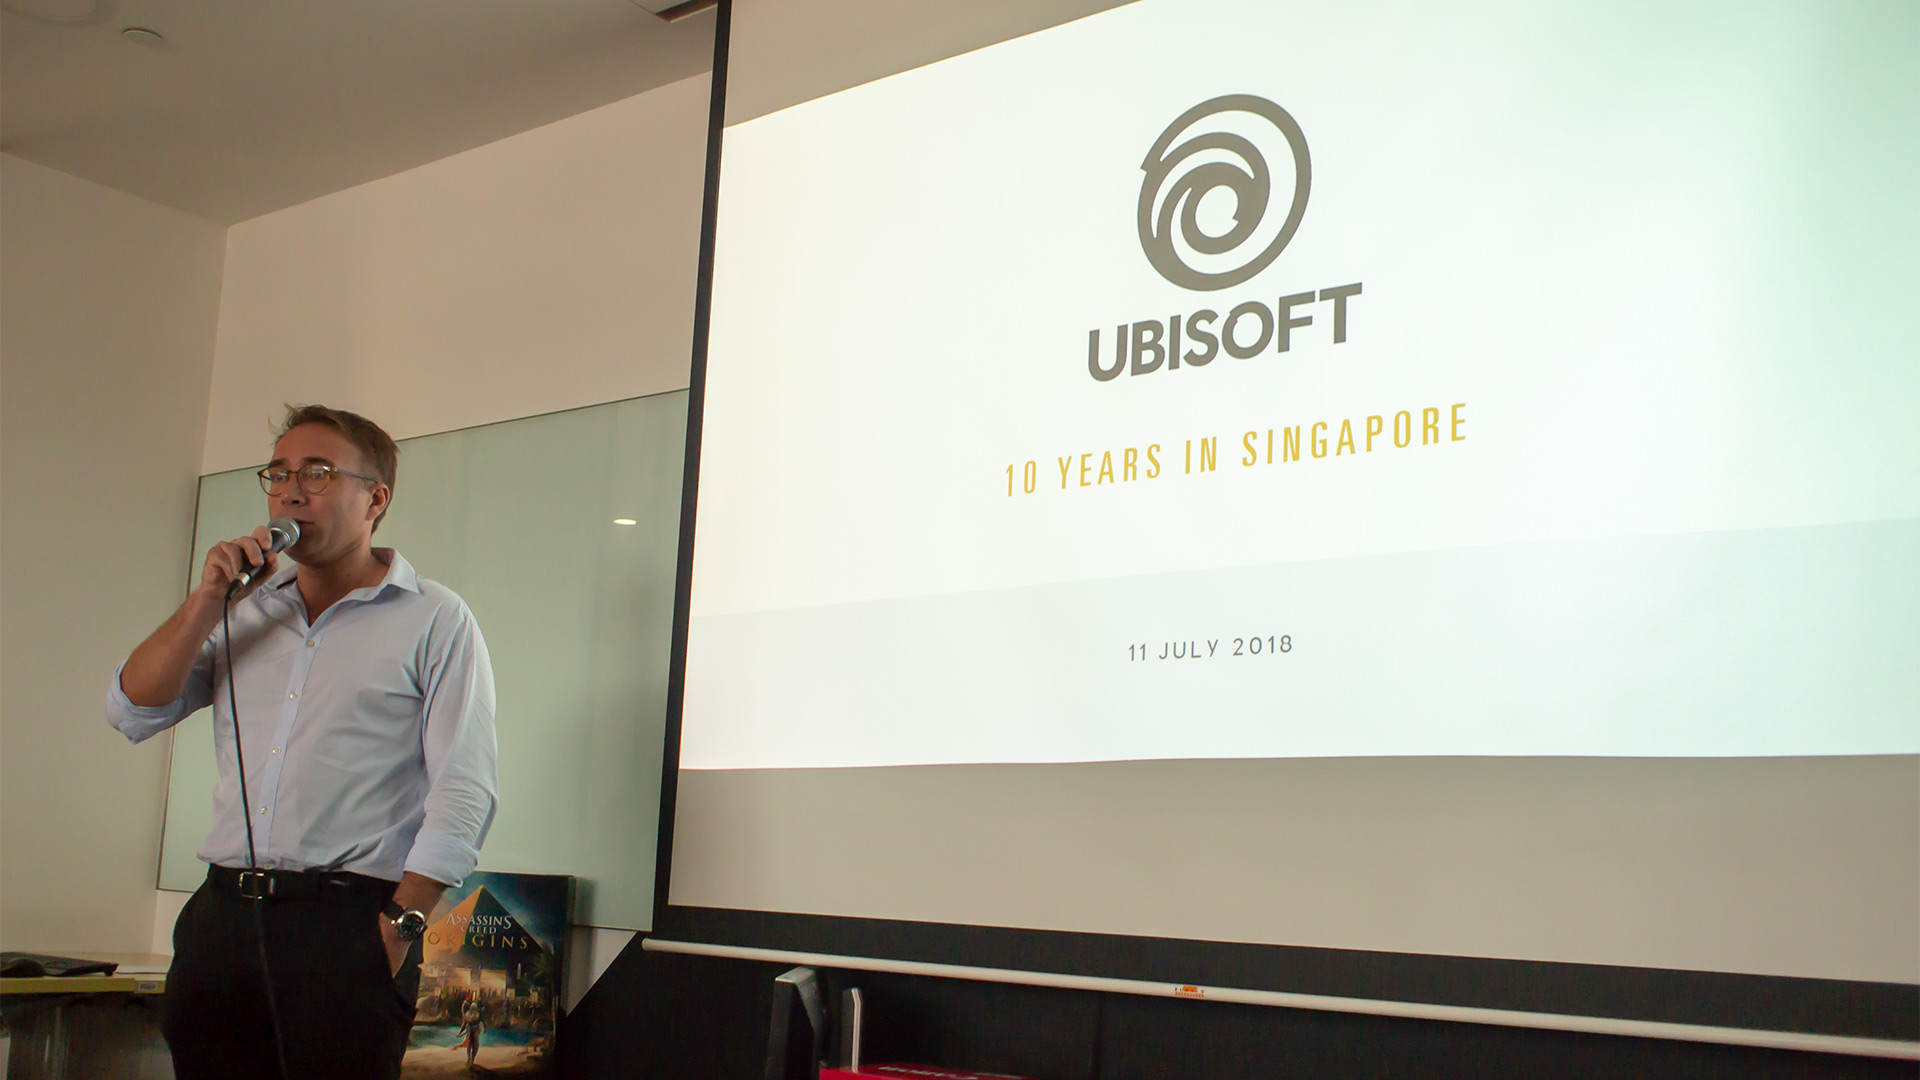 Ubisoft Singapore 10th Anniversary - 01